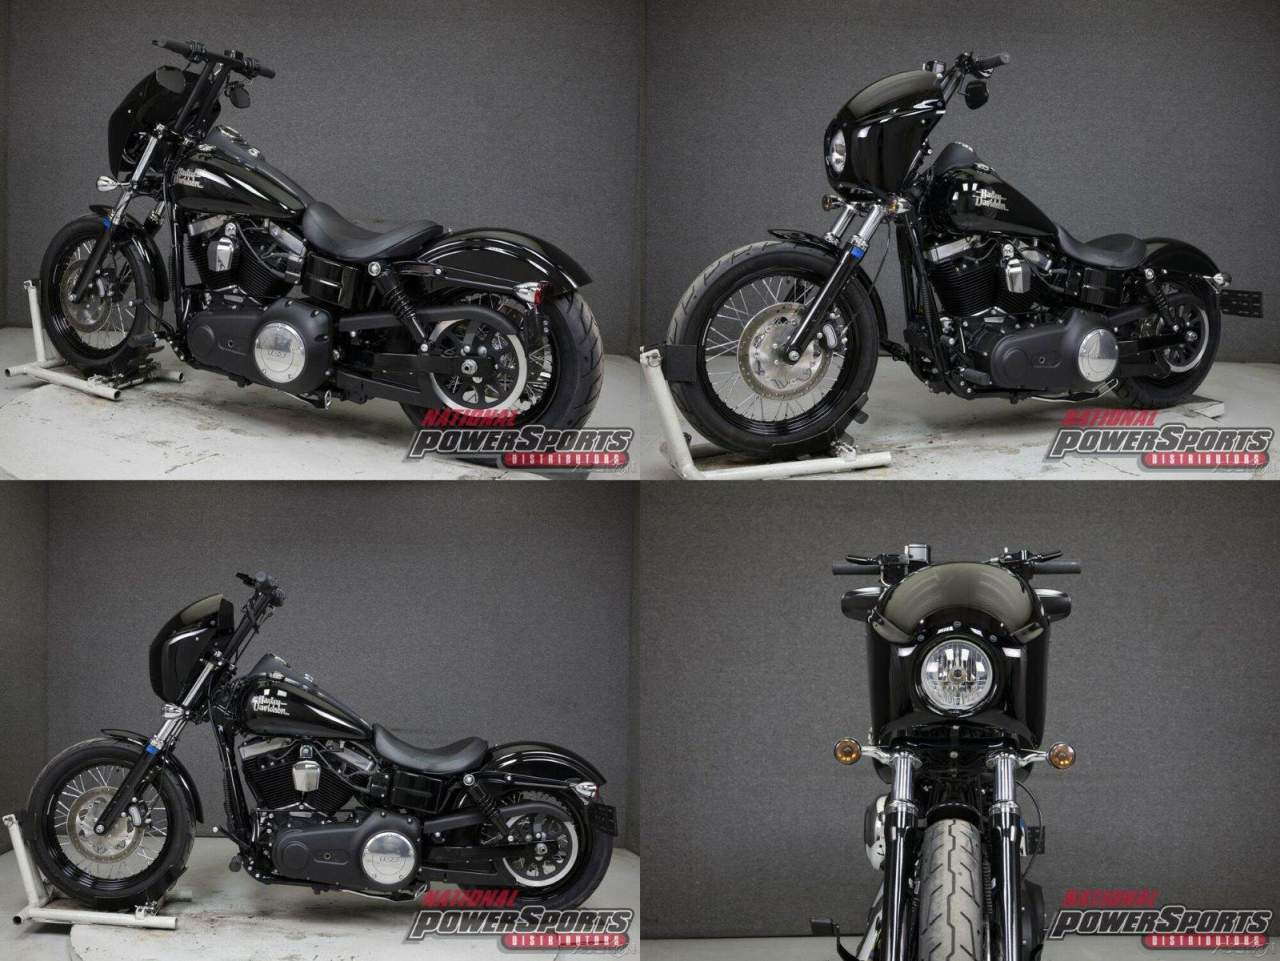 2017 Harley-Davidson Dyna FXDB STREET BOB VIVID BLACK used for sale